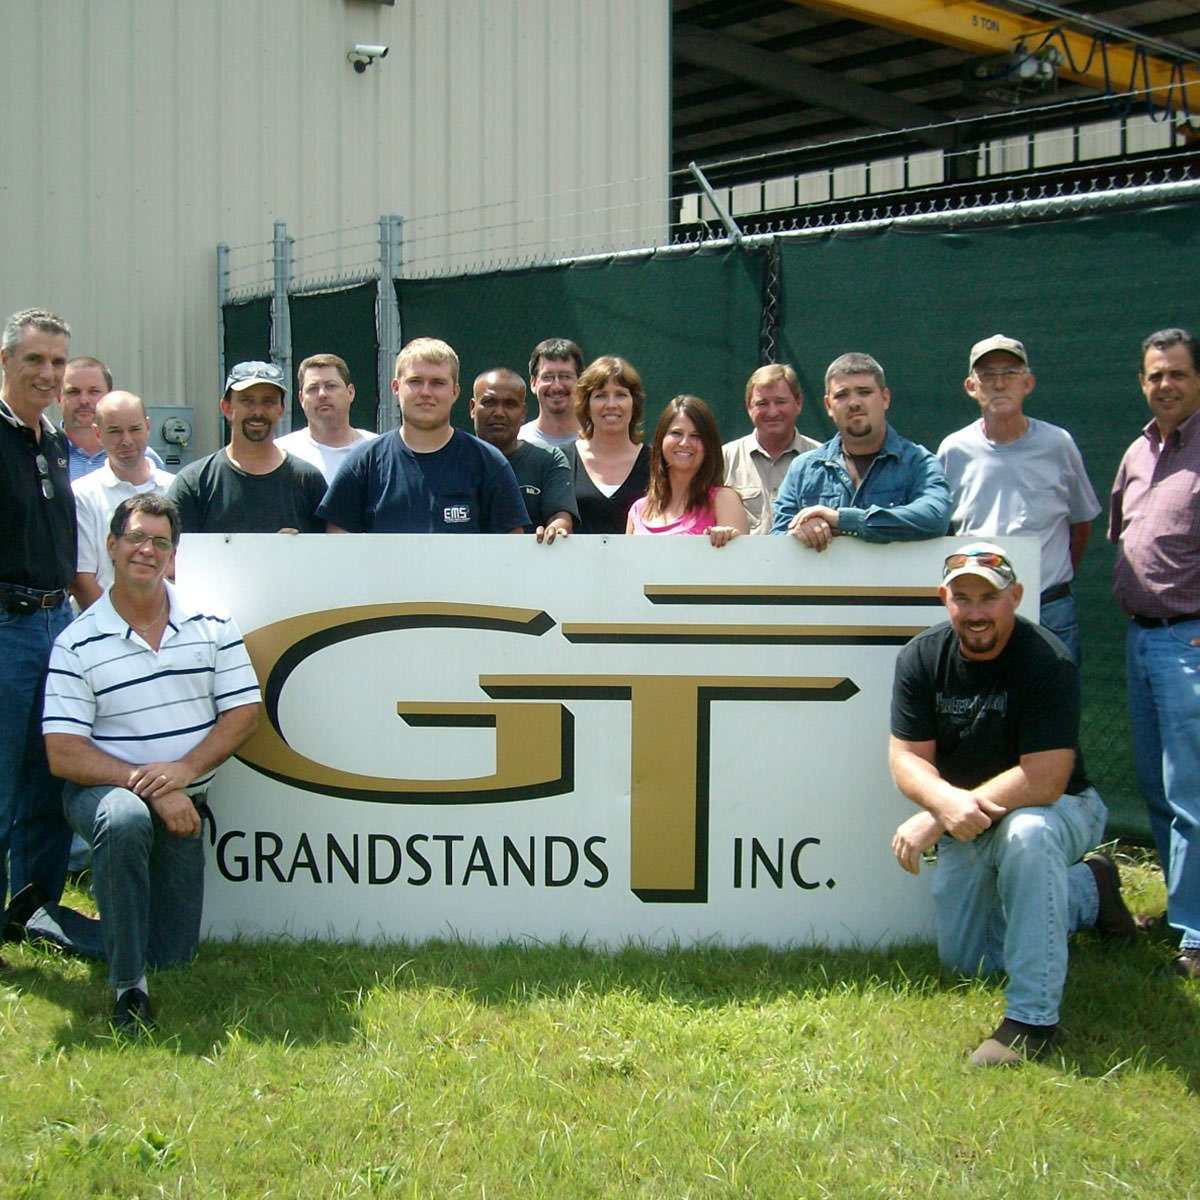 The GT grandstand team